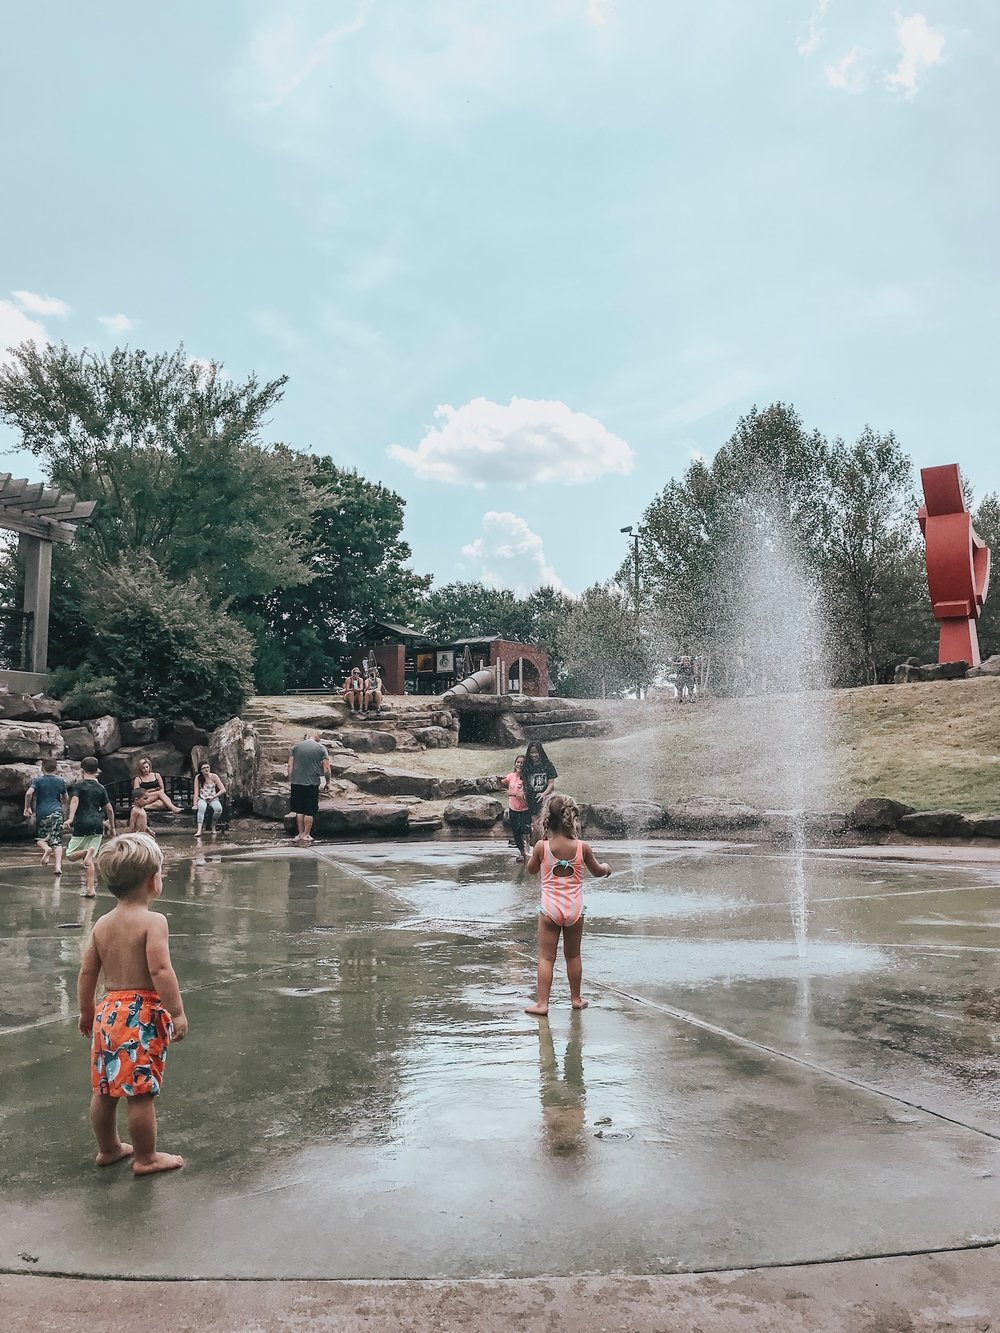 The amazing Peabody splashpad